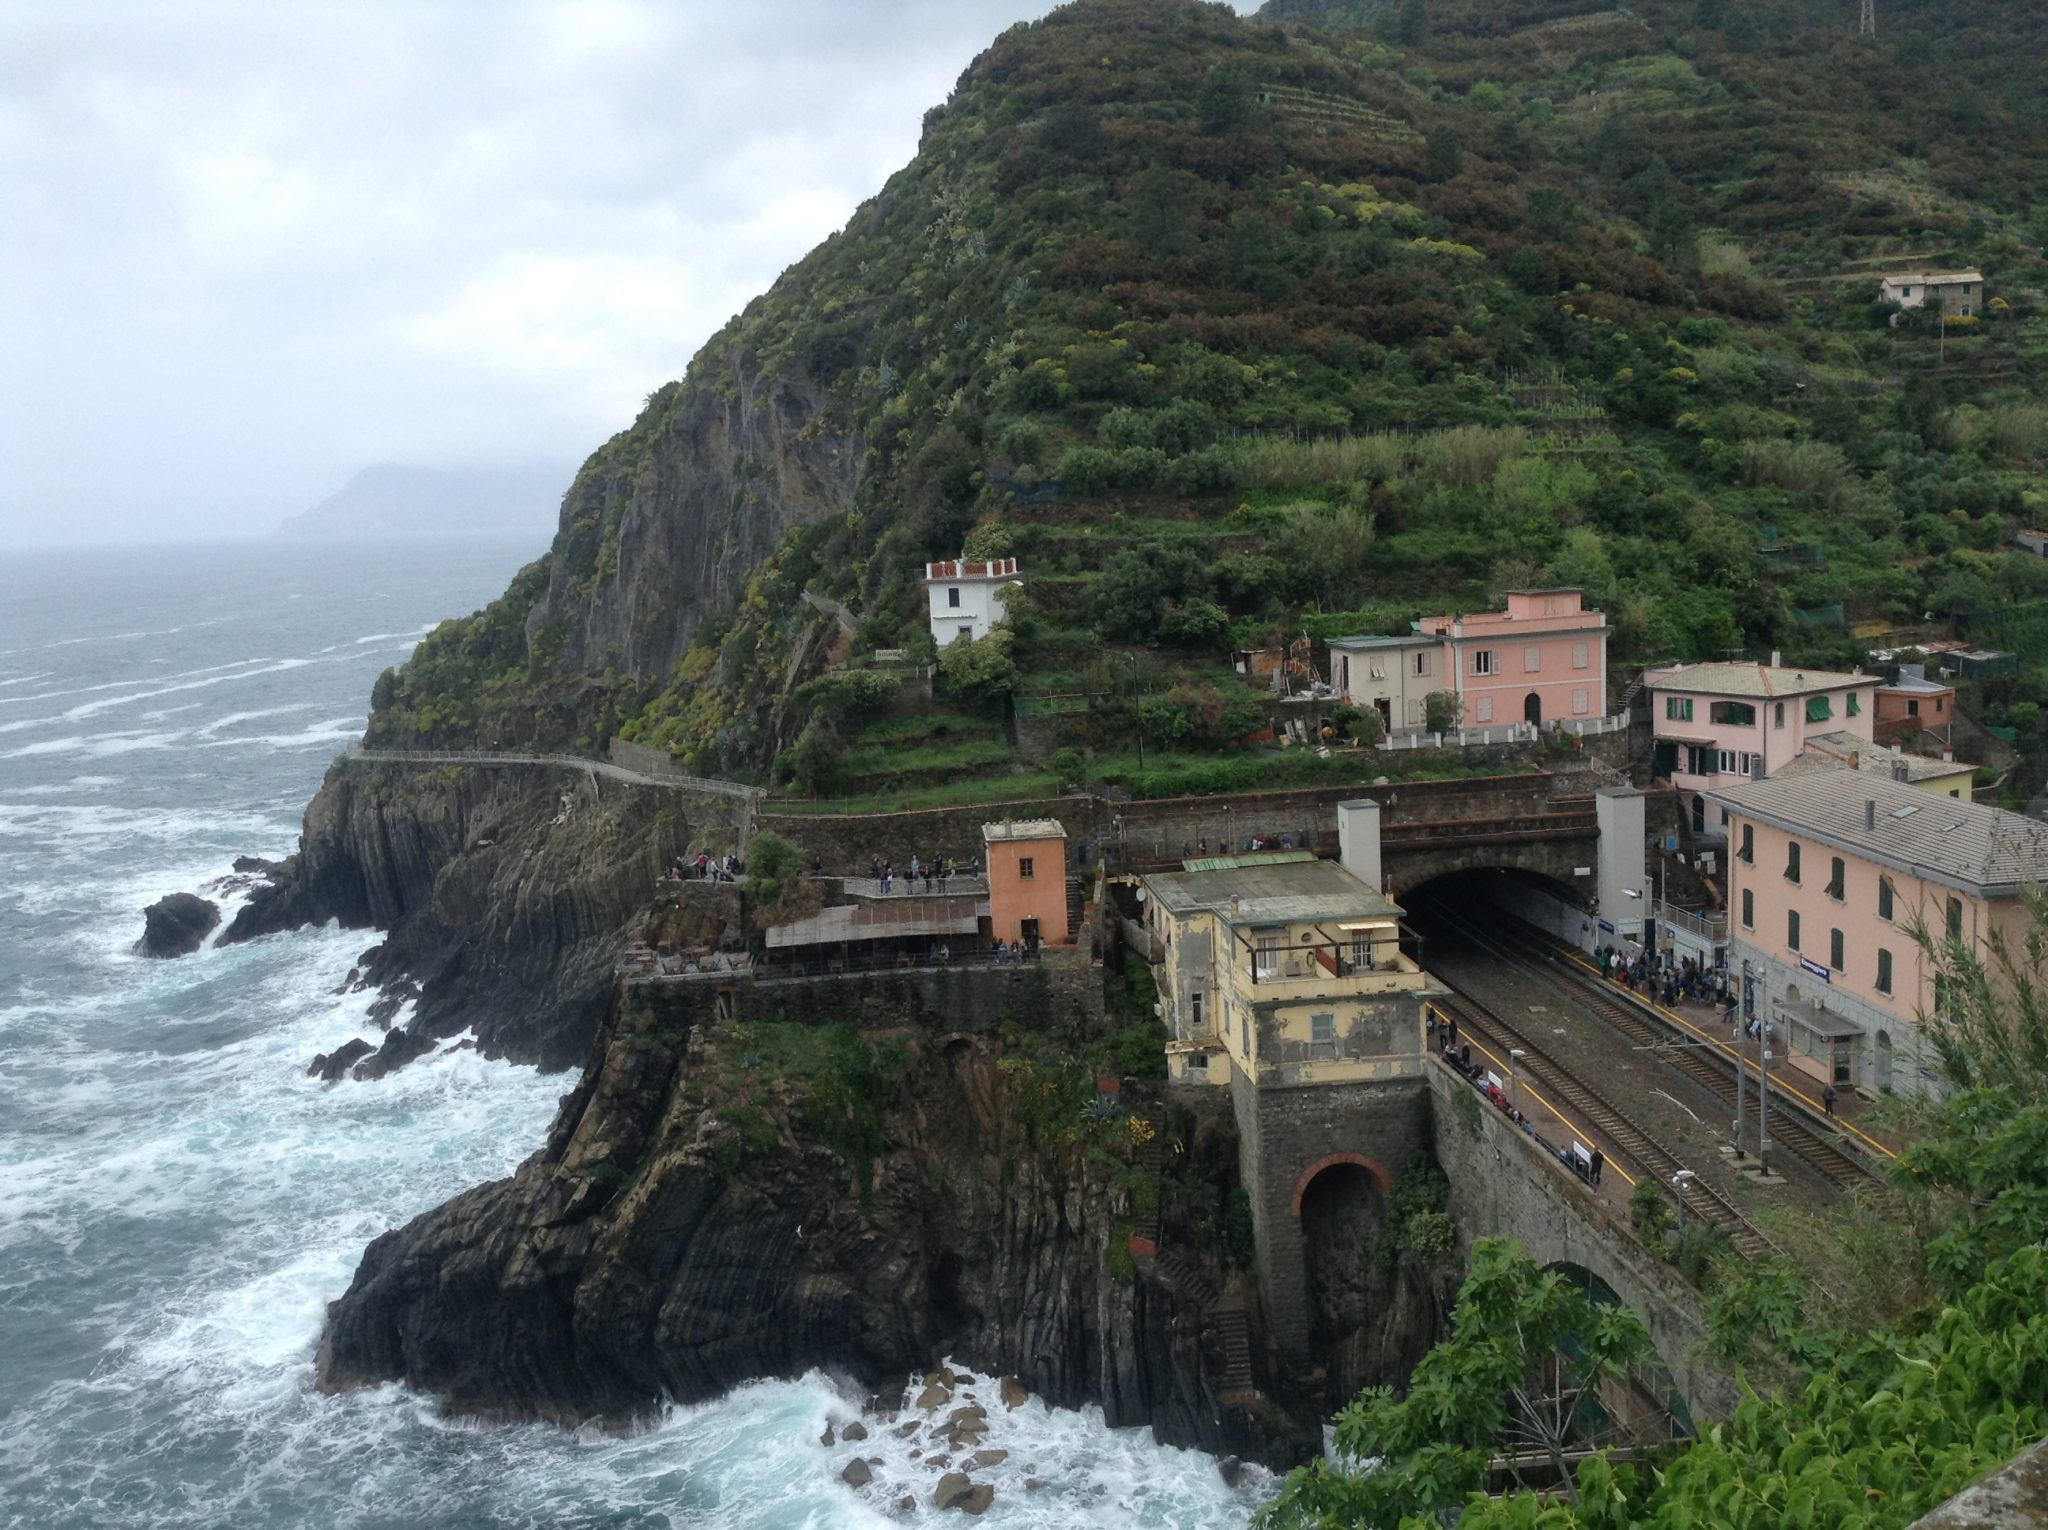 Cinque Terre: The famous five Italian villages that everyone wants to visit